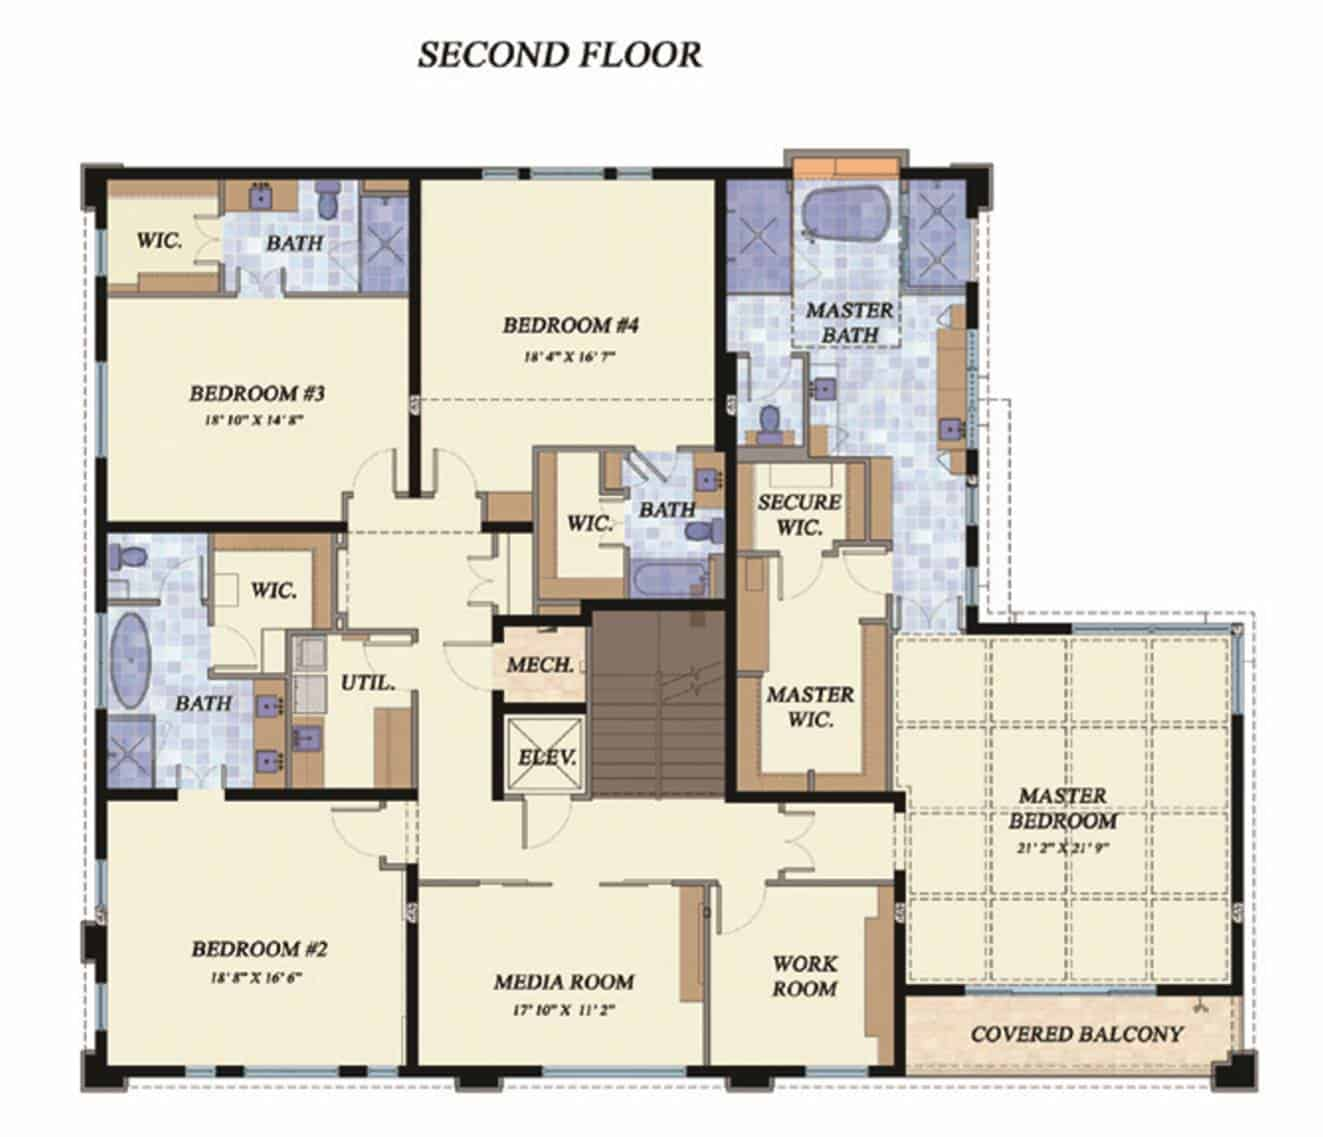 Second level floor plan with media room, workroom, three bedrooms, and a primary suite with a special secure area for a walk-in closet and its own private covered balcony.